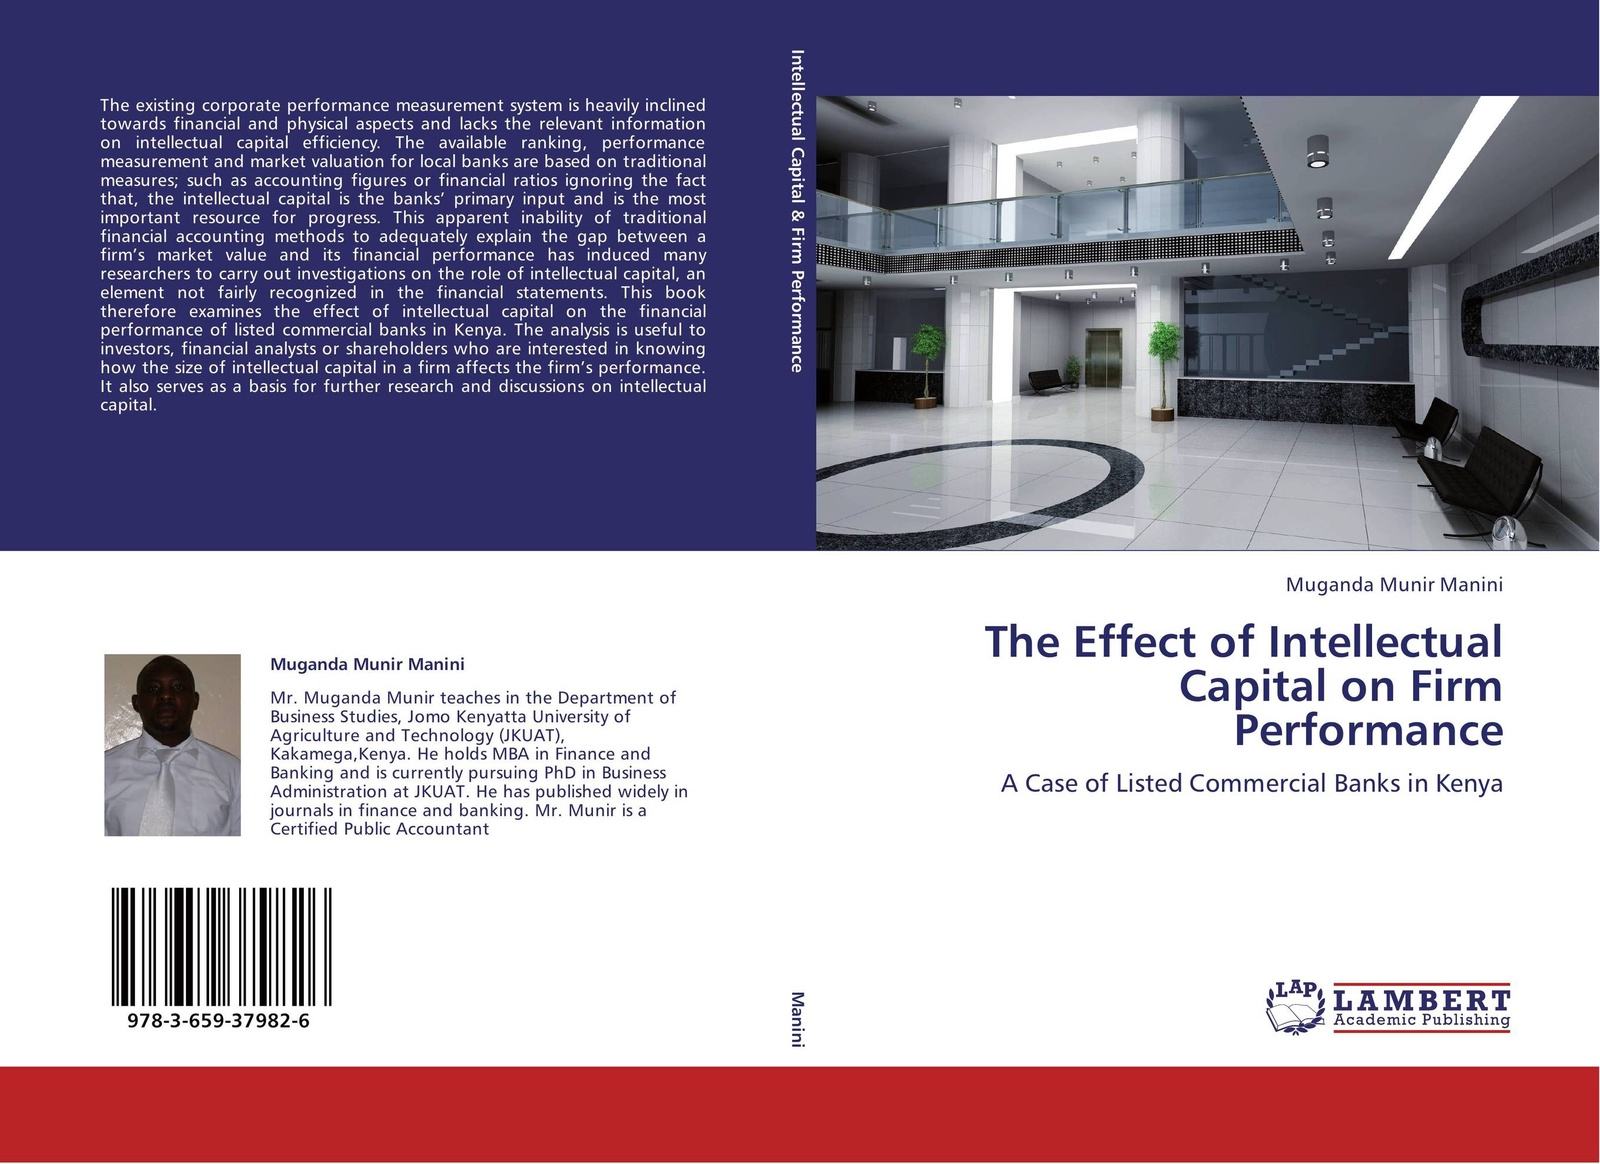 Muganda Munir Manini The Effect of Intellectual Capital on Firm Performance the effect of alm on commercial banks profitability